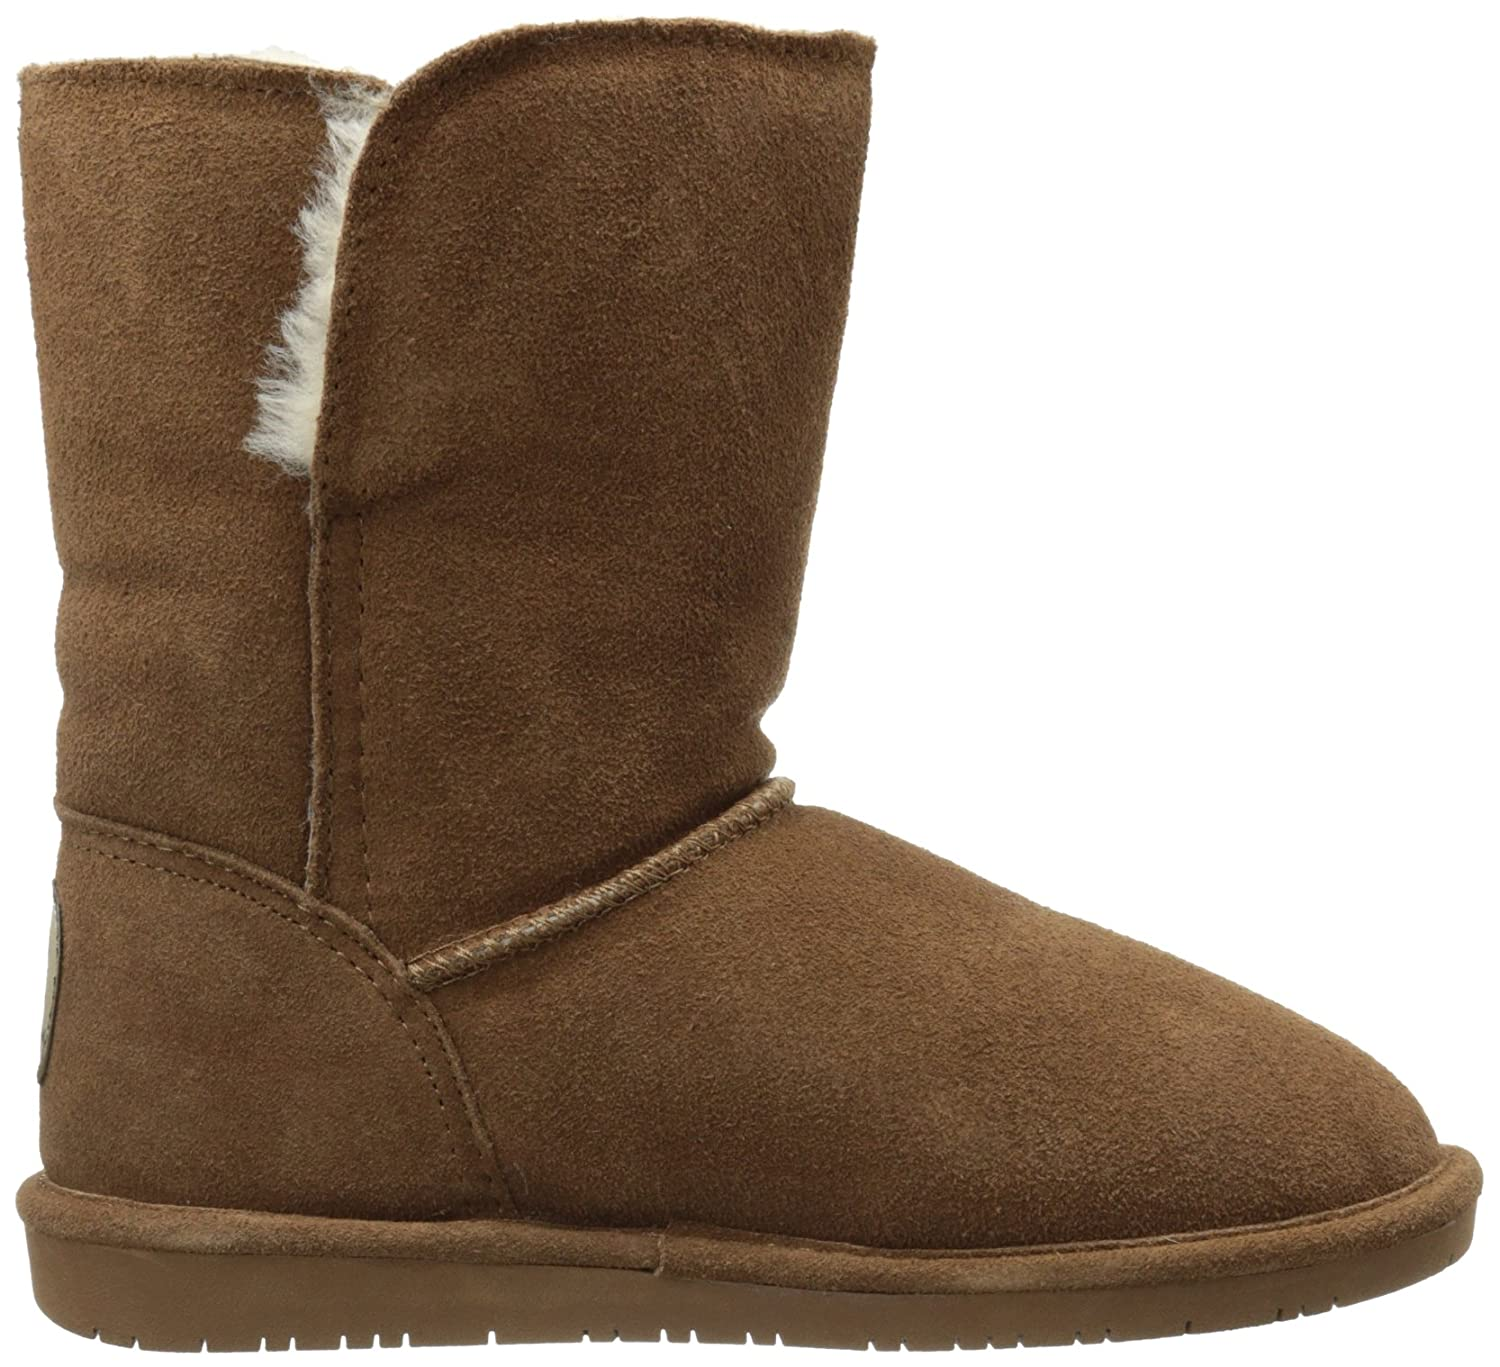 BEARPAW Women's Abigail Fashion Boot B003CYM6H6 9 B(M) US|Hickory